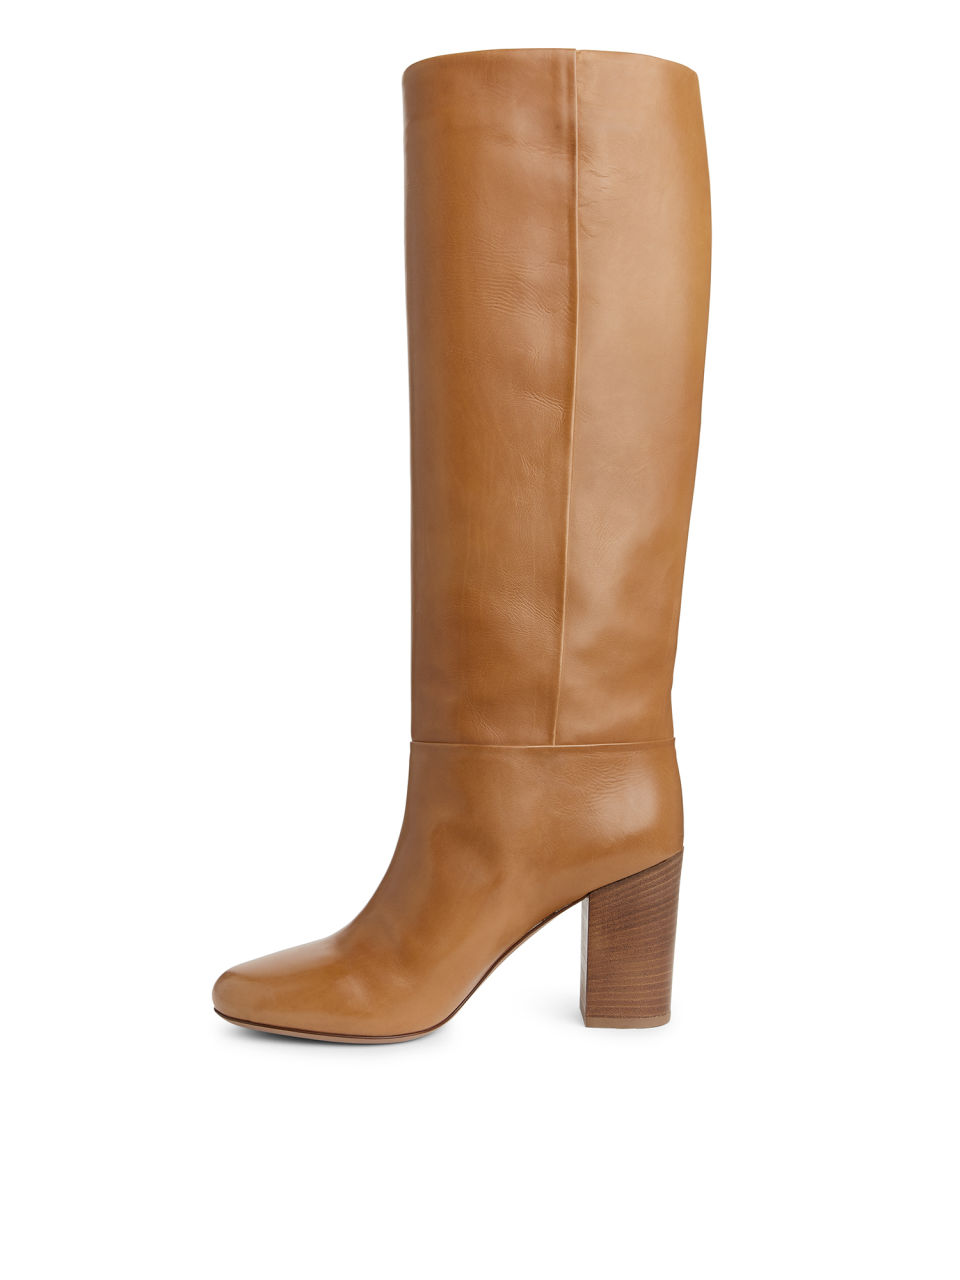 Side image of Arket high-heel leather boots in orange